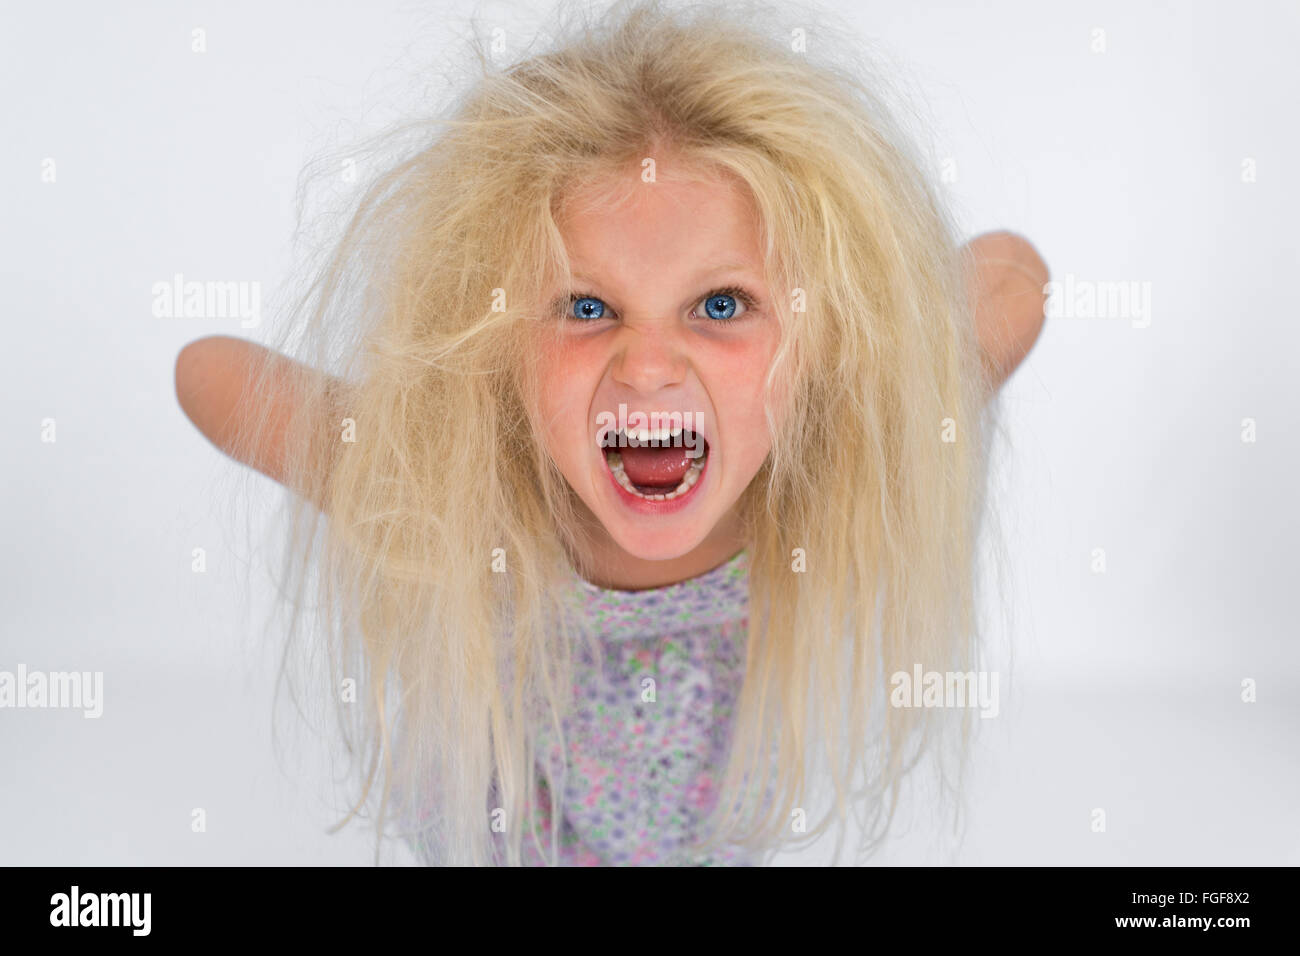 Young girl with messy blonde hair screaming Stock Photo